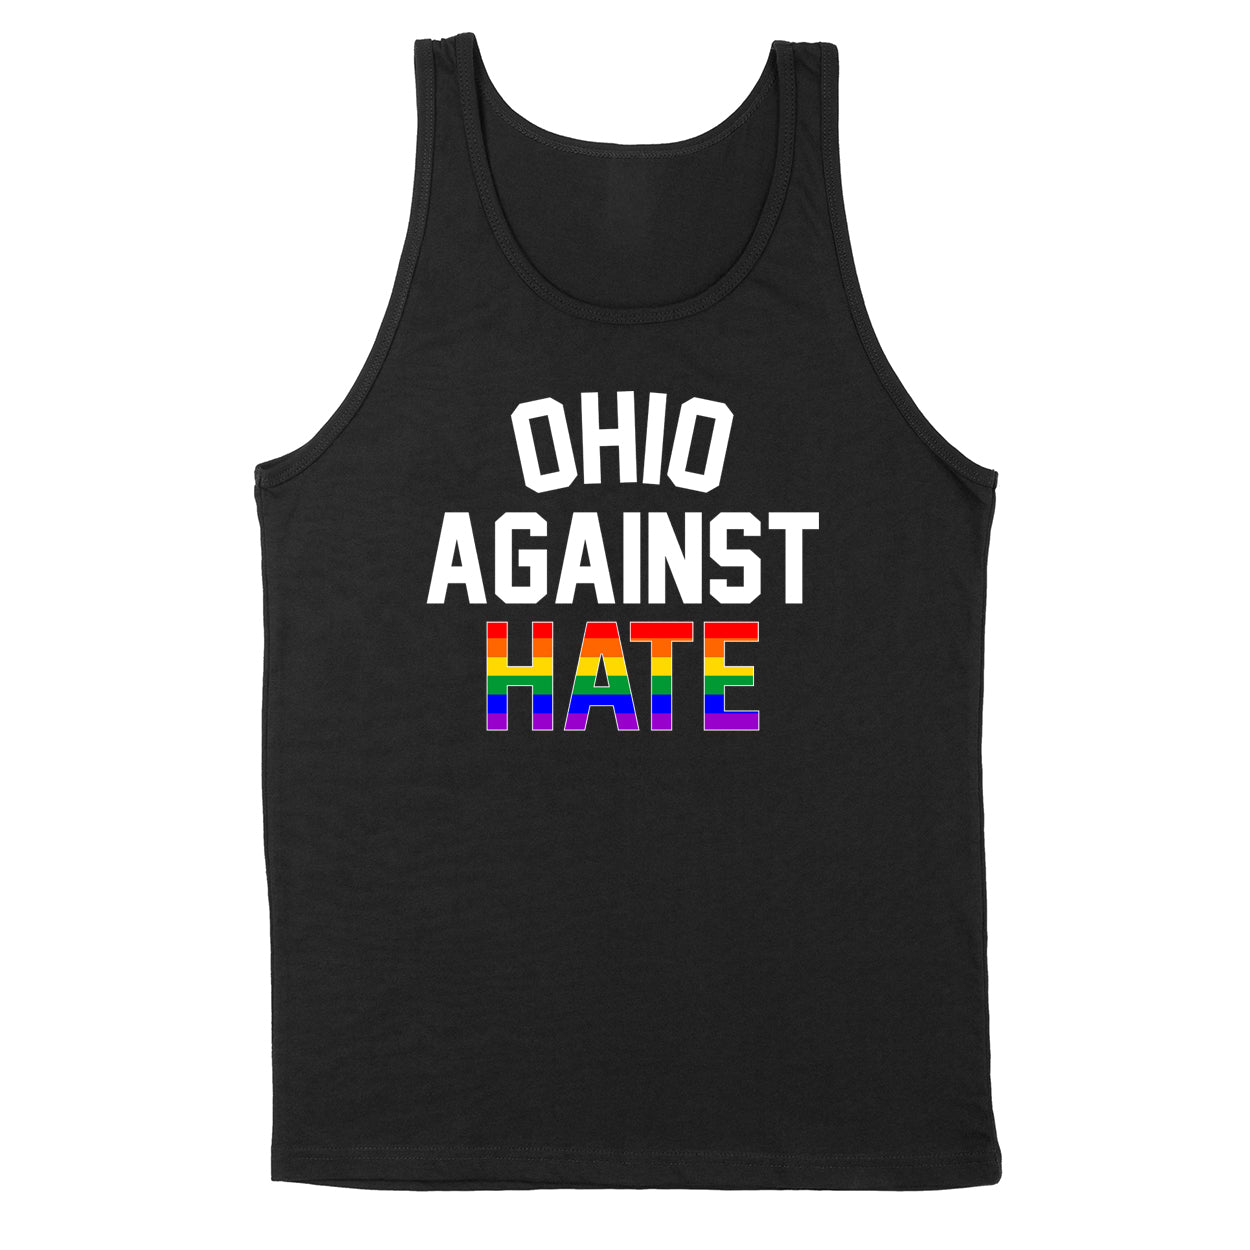 Ohio Against Hate Men's Unisex Tank